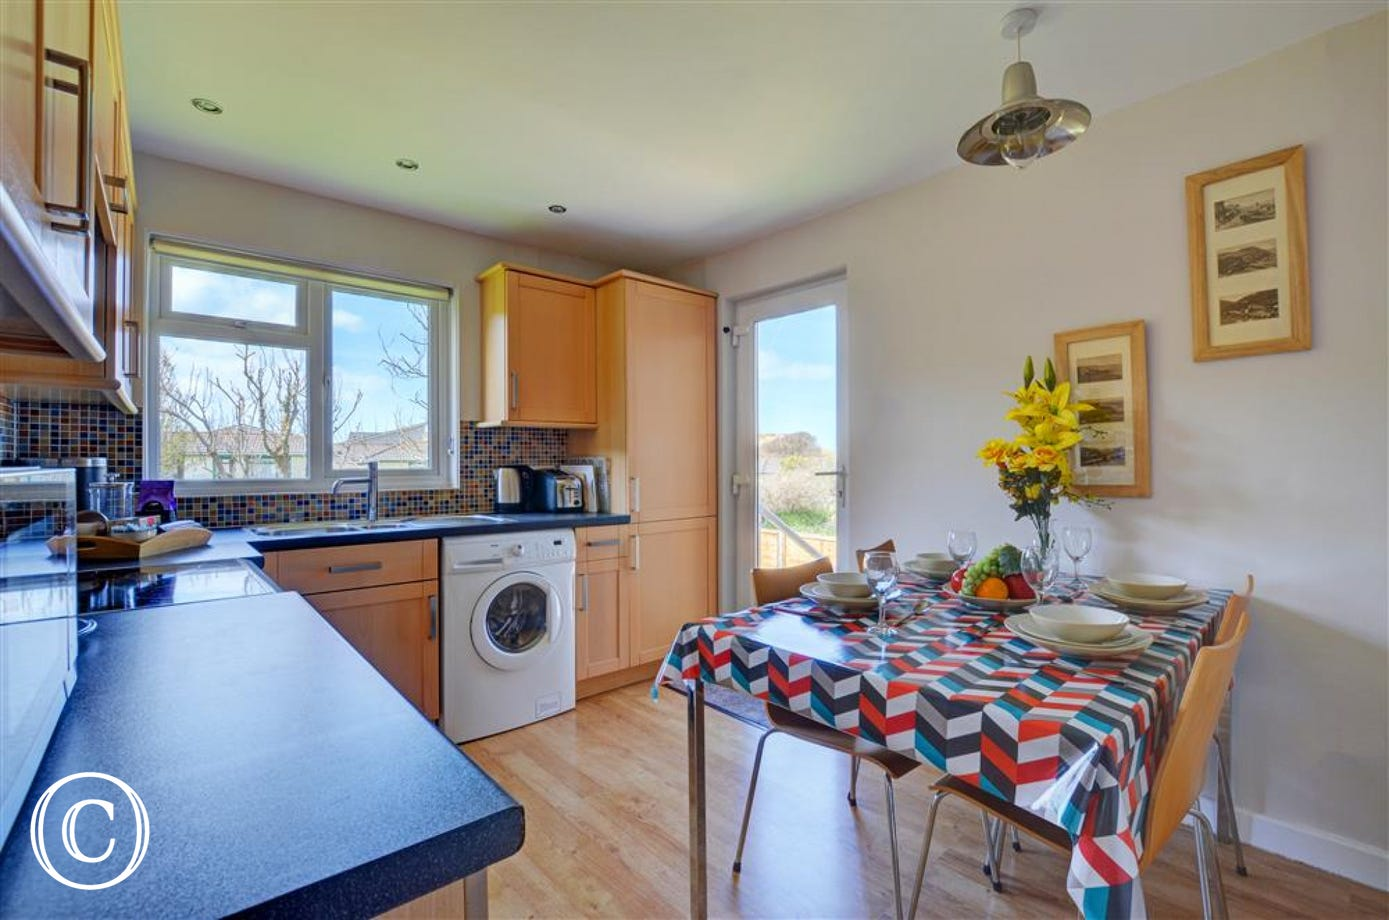 The bright kitchen has a door leading to the south west facing garden